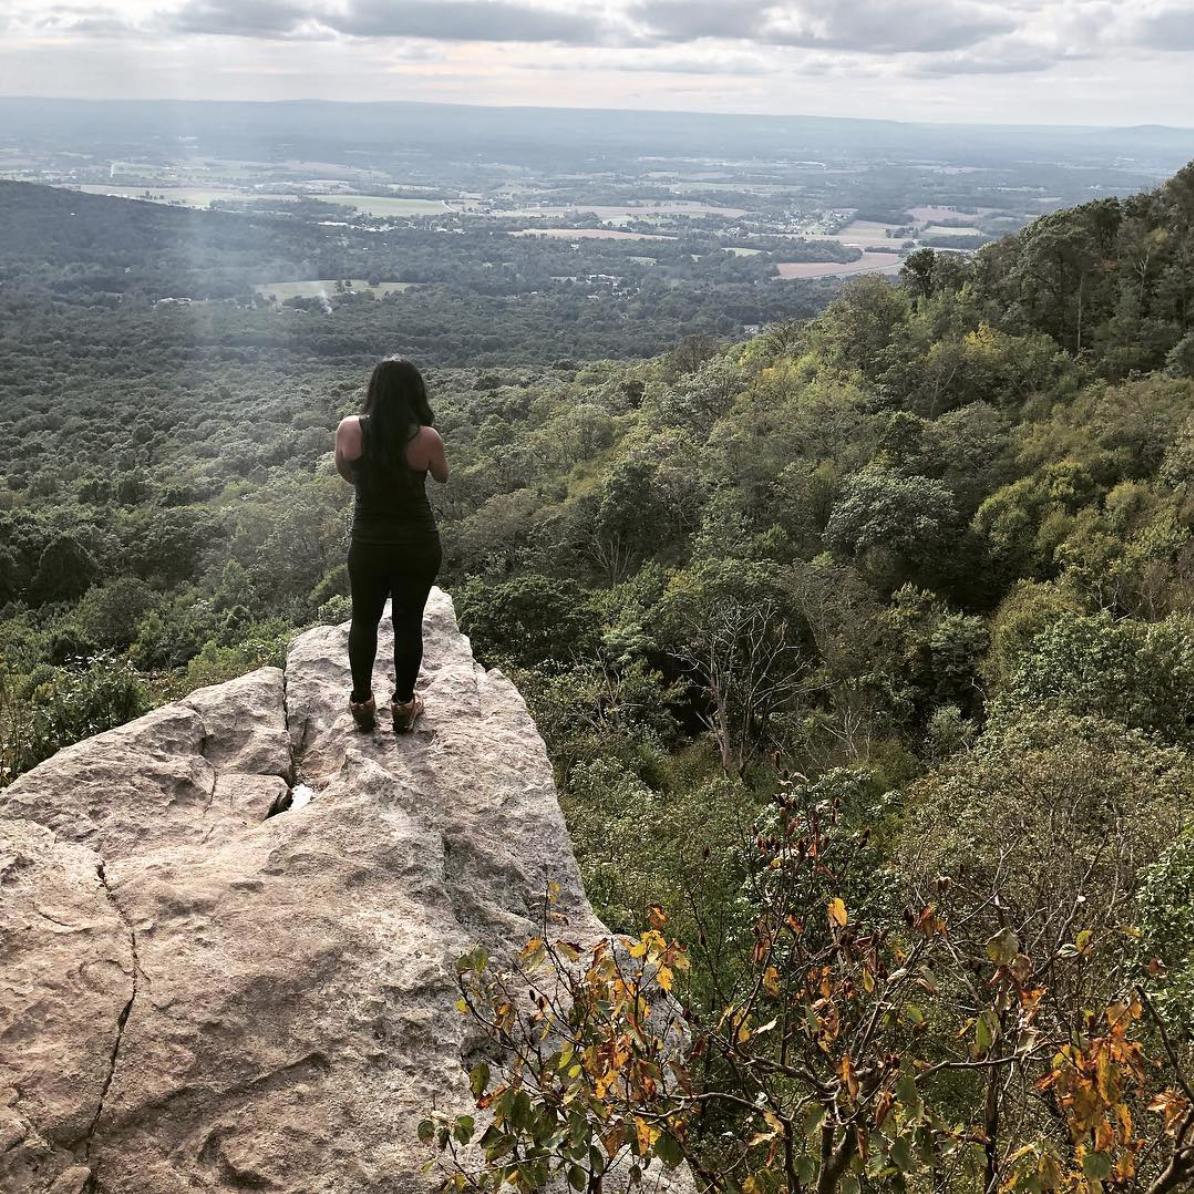 Shenandoah is a popular hiking spot and Old Rag is a challenging trail, but it's something special when the leaves change. (Image via @anishaaaa)